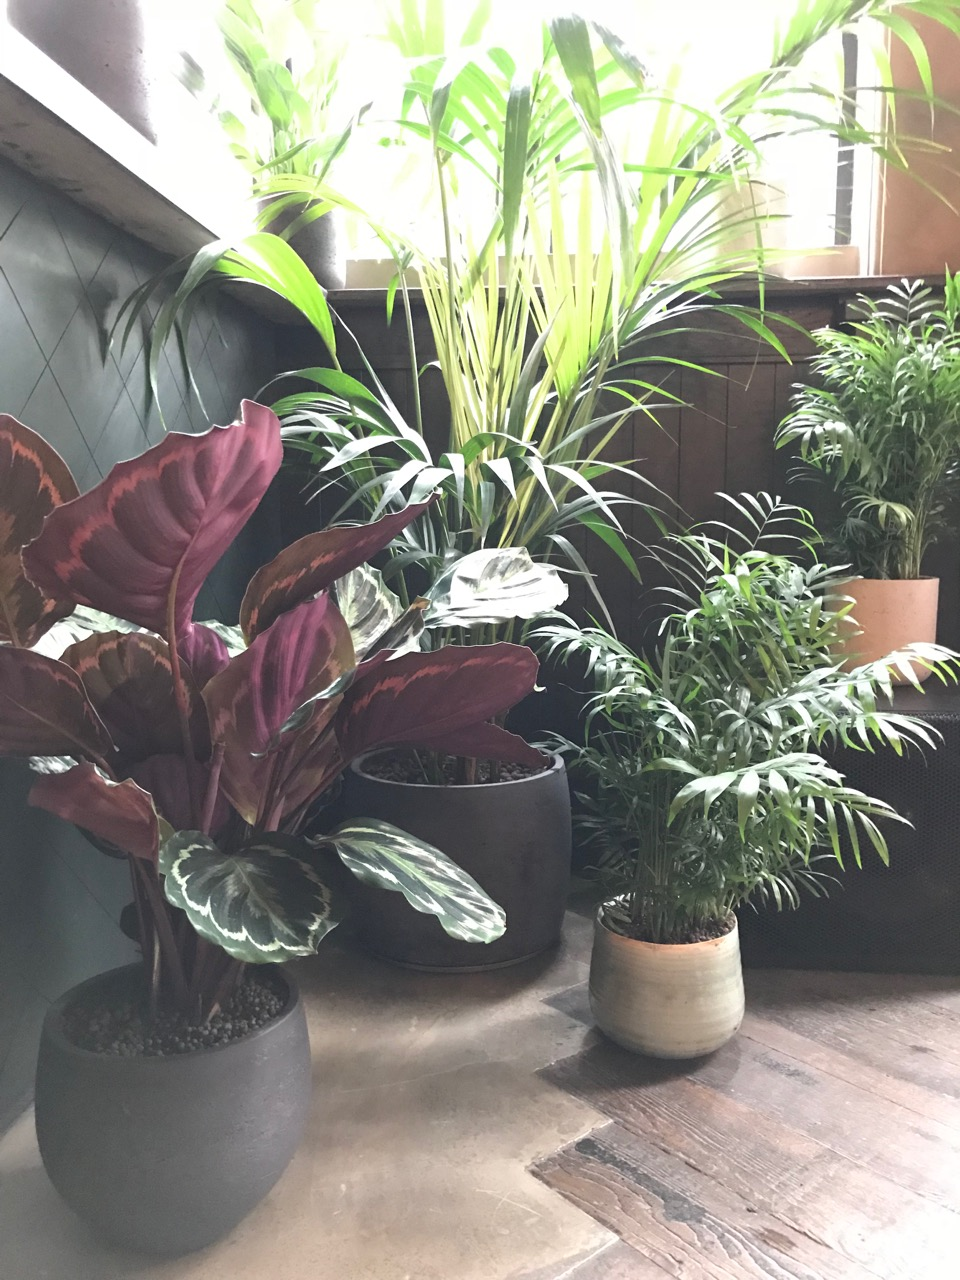 photo of foliage plants fountain and ink waterloo bar indoor plants garden